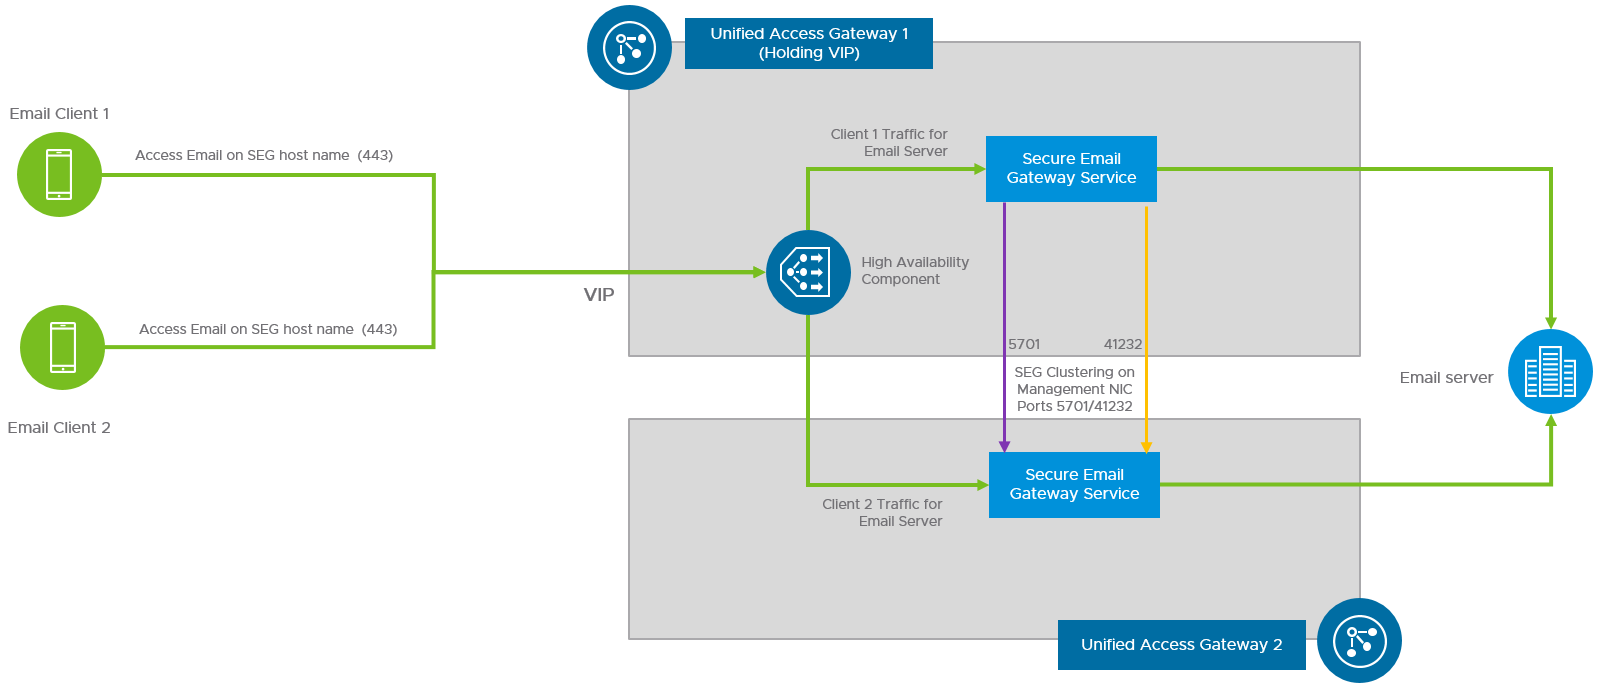 Unified Access Gateway HA Flow for Secure Email Gateway Edge Service